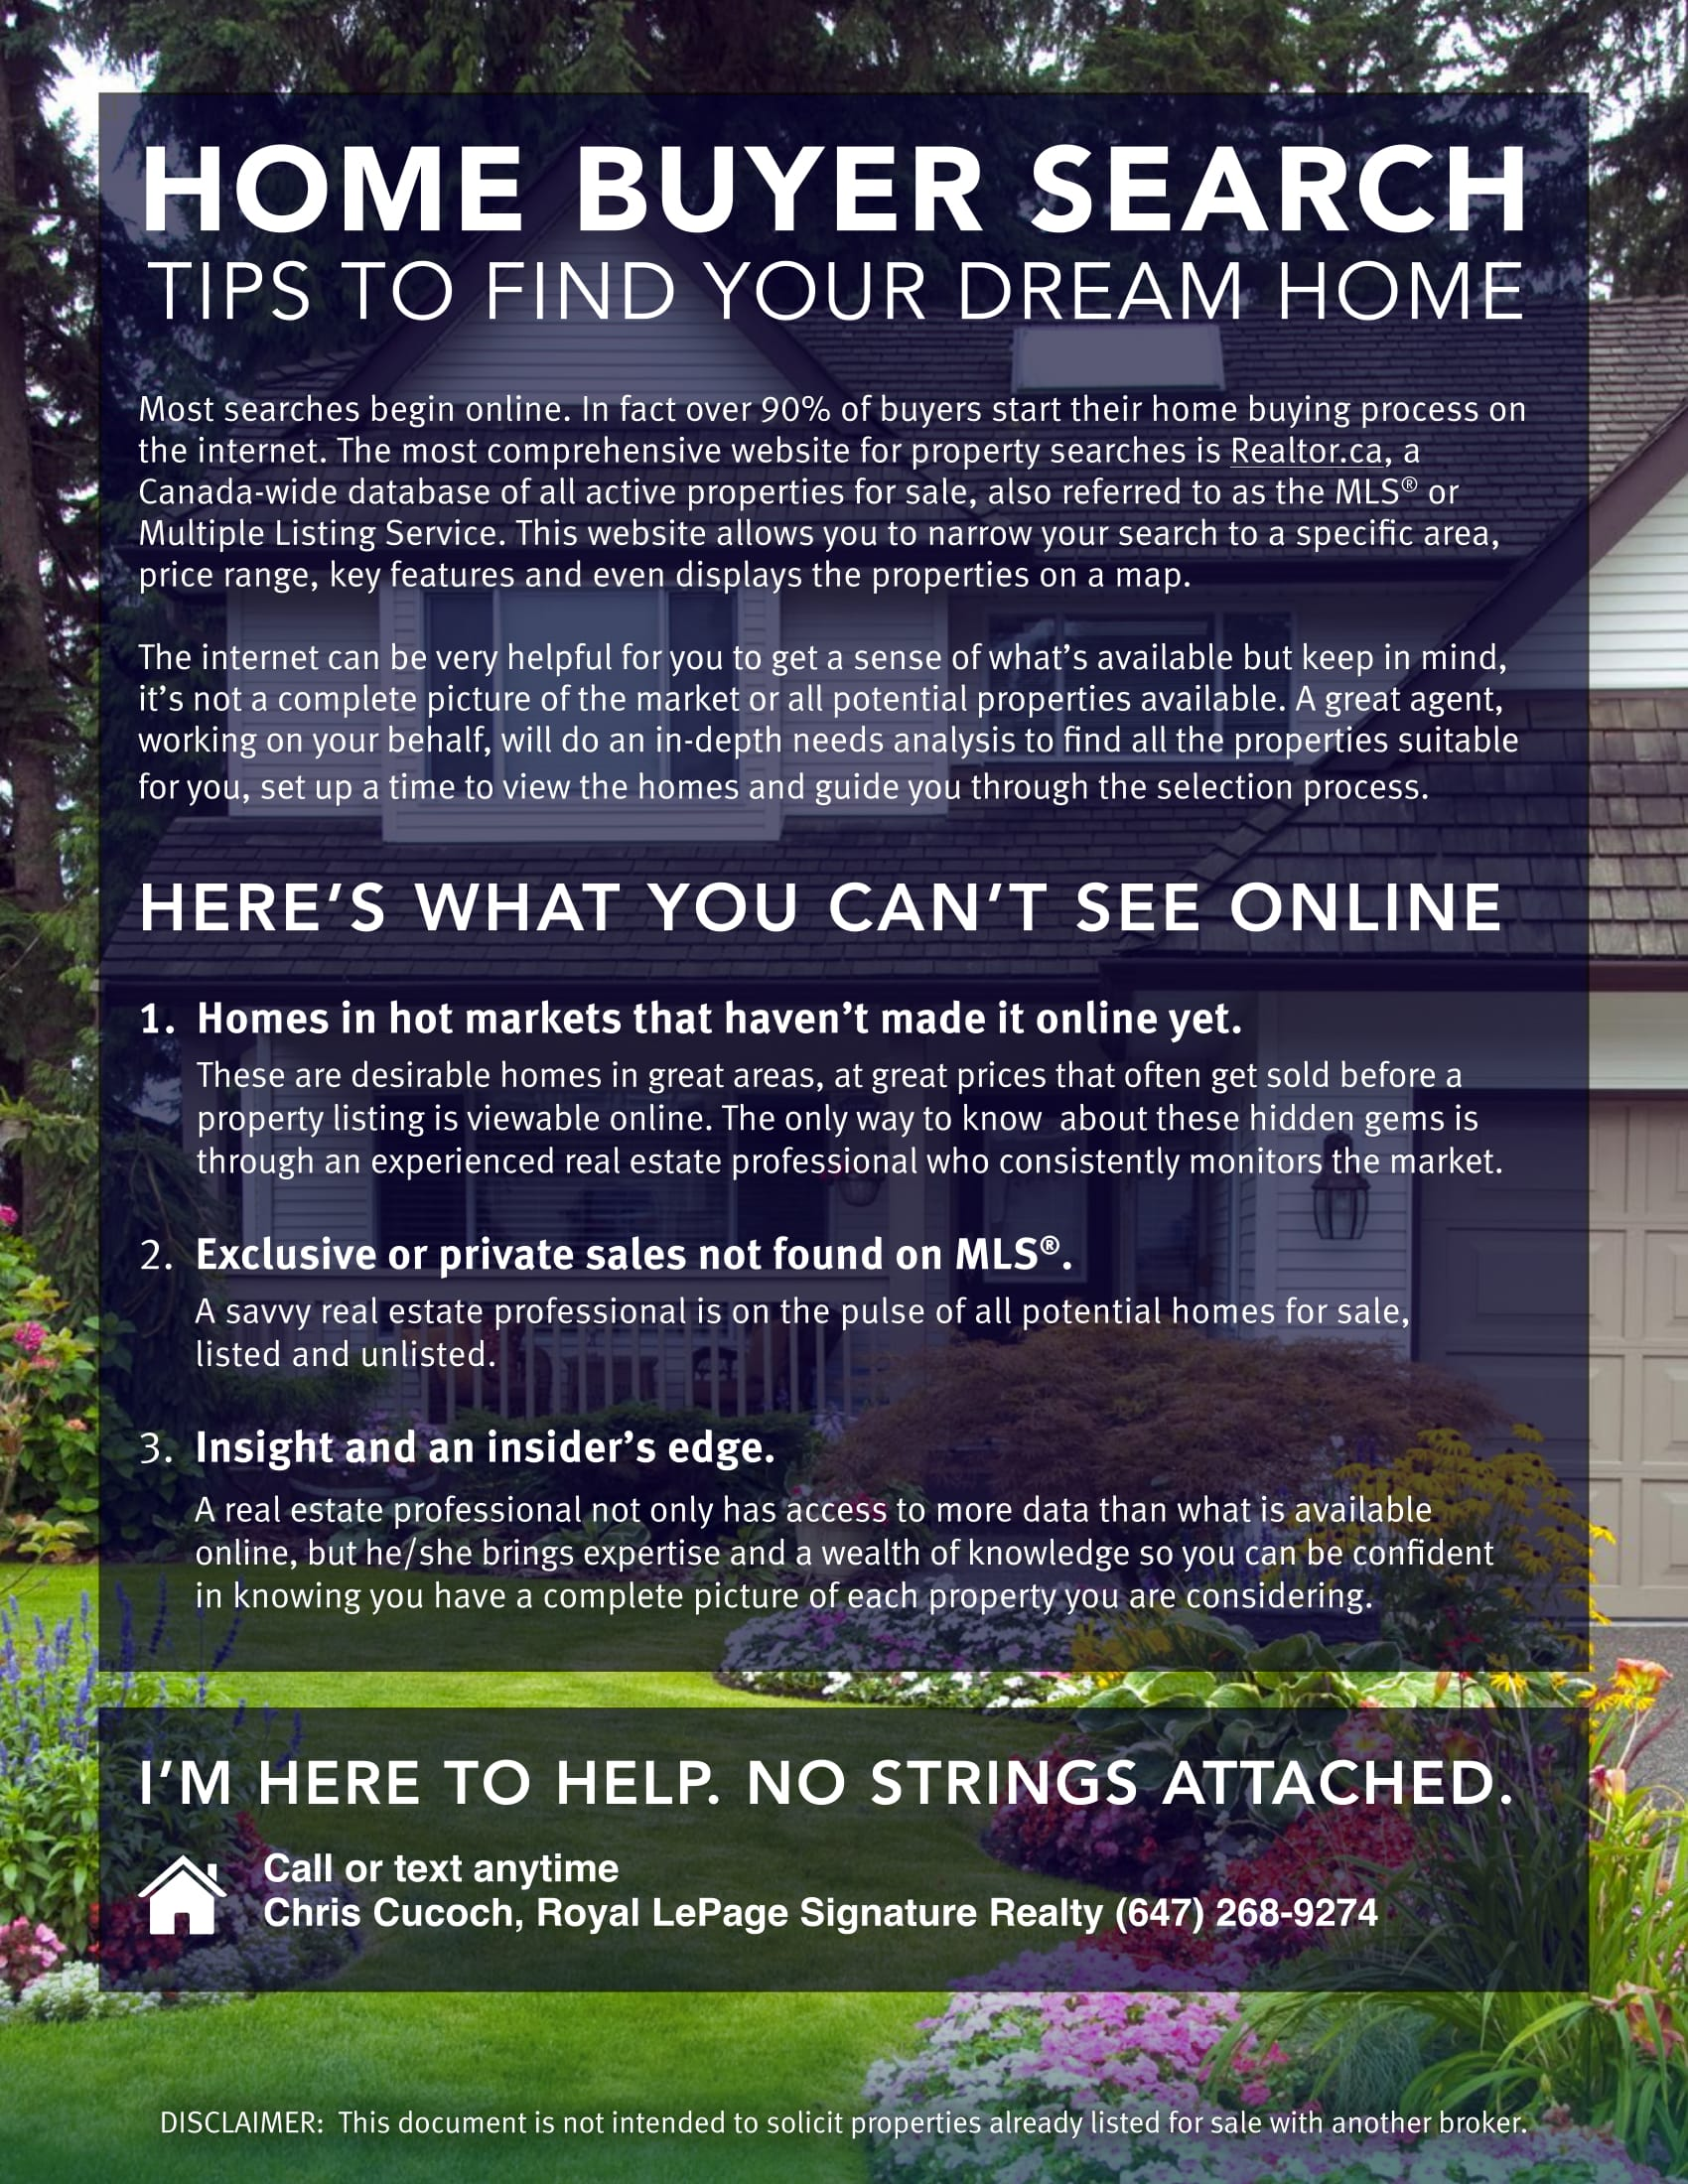 Home Buyer Search Tips to Find Your Dream Home